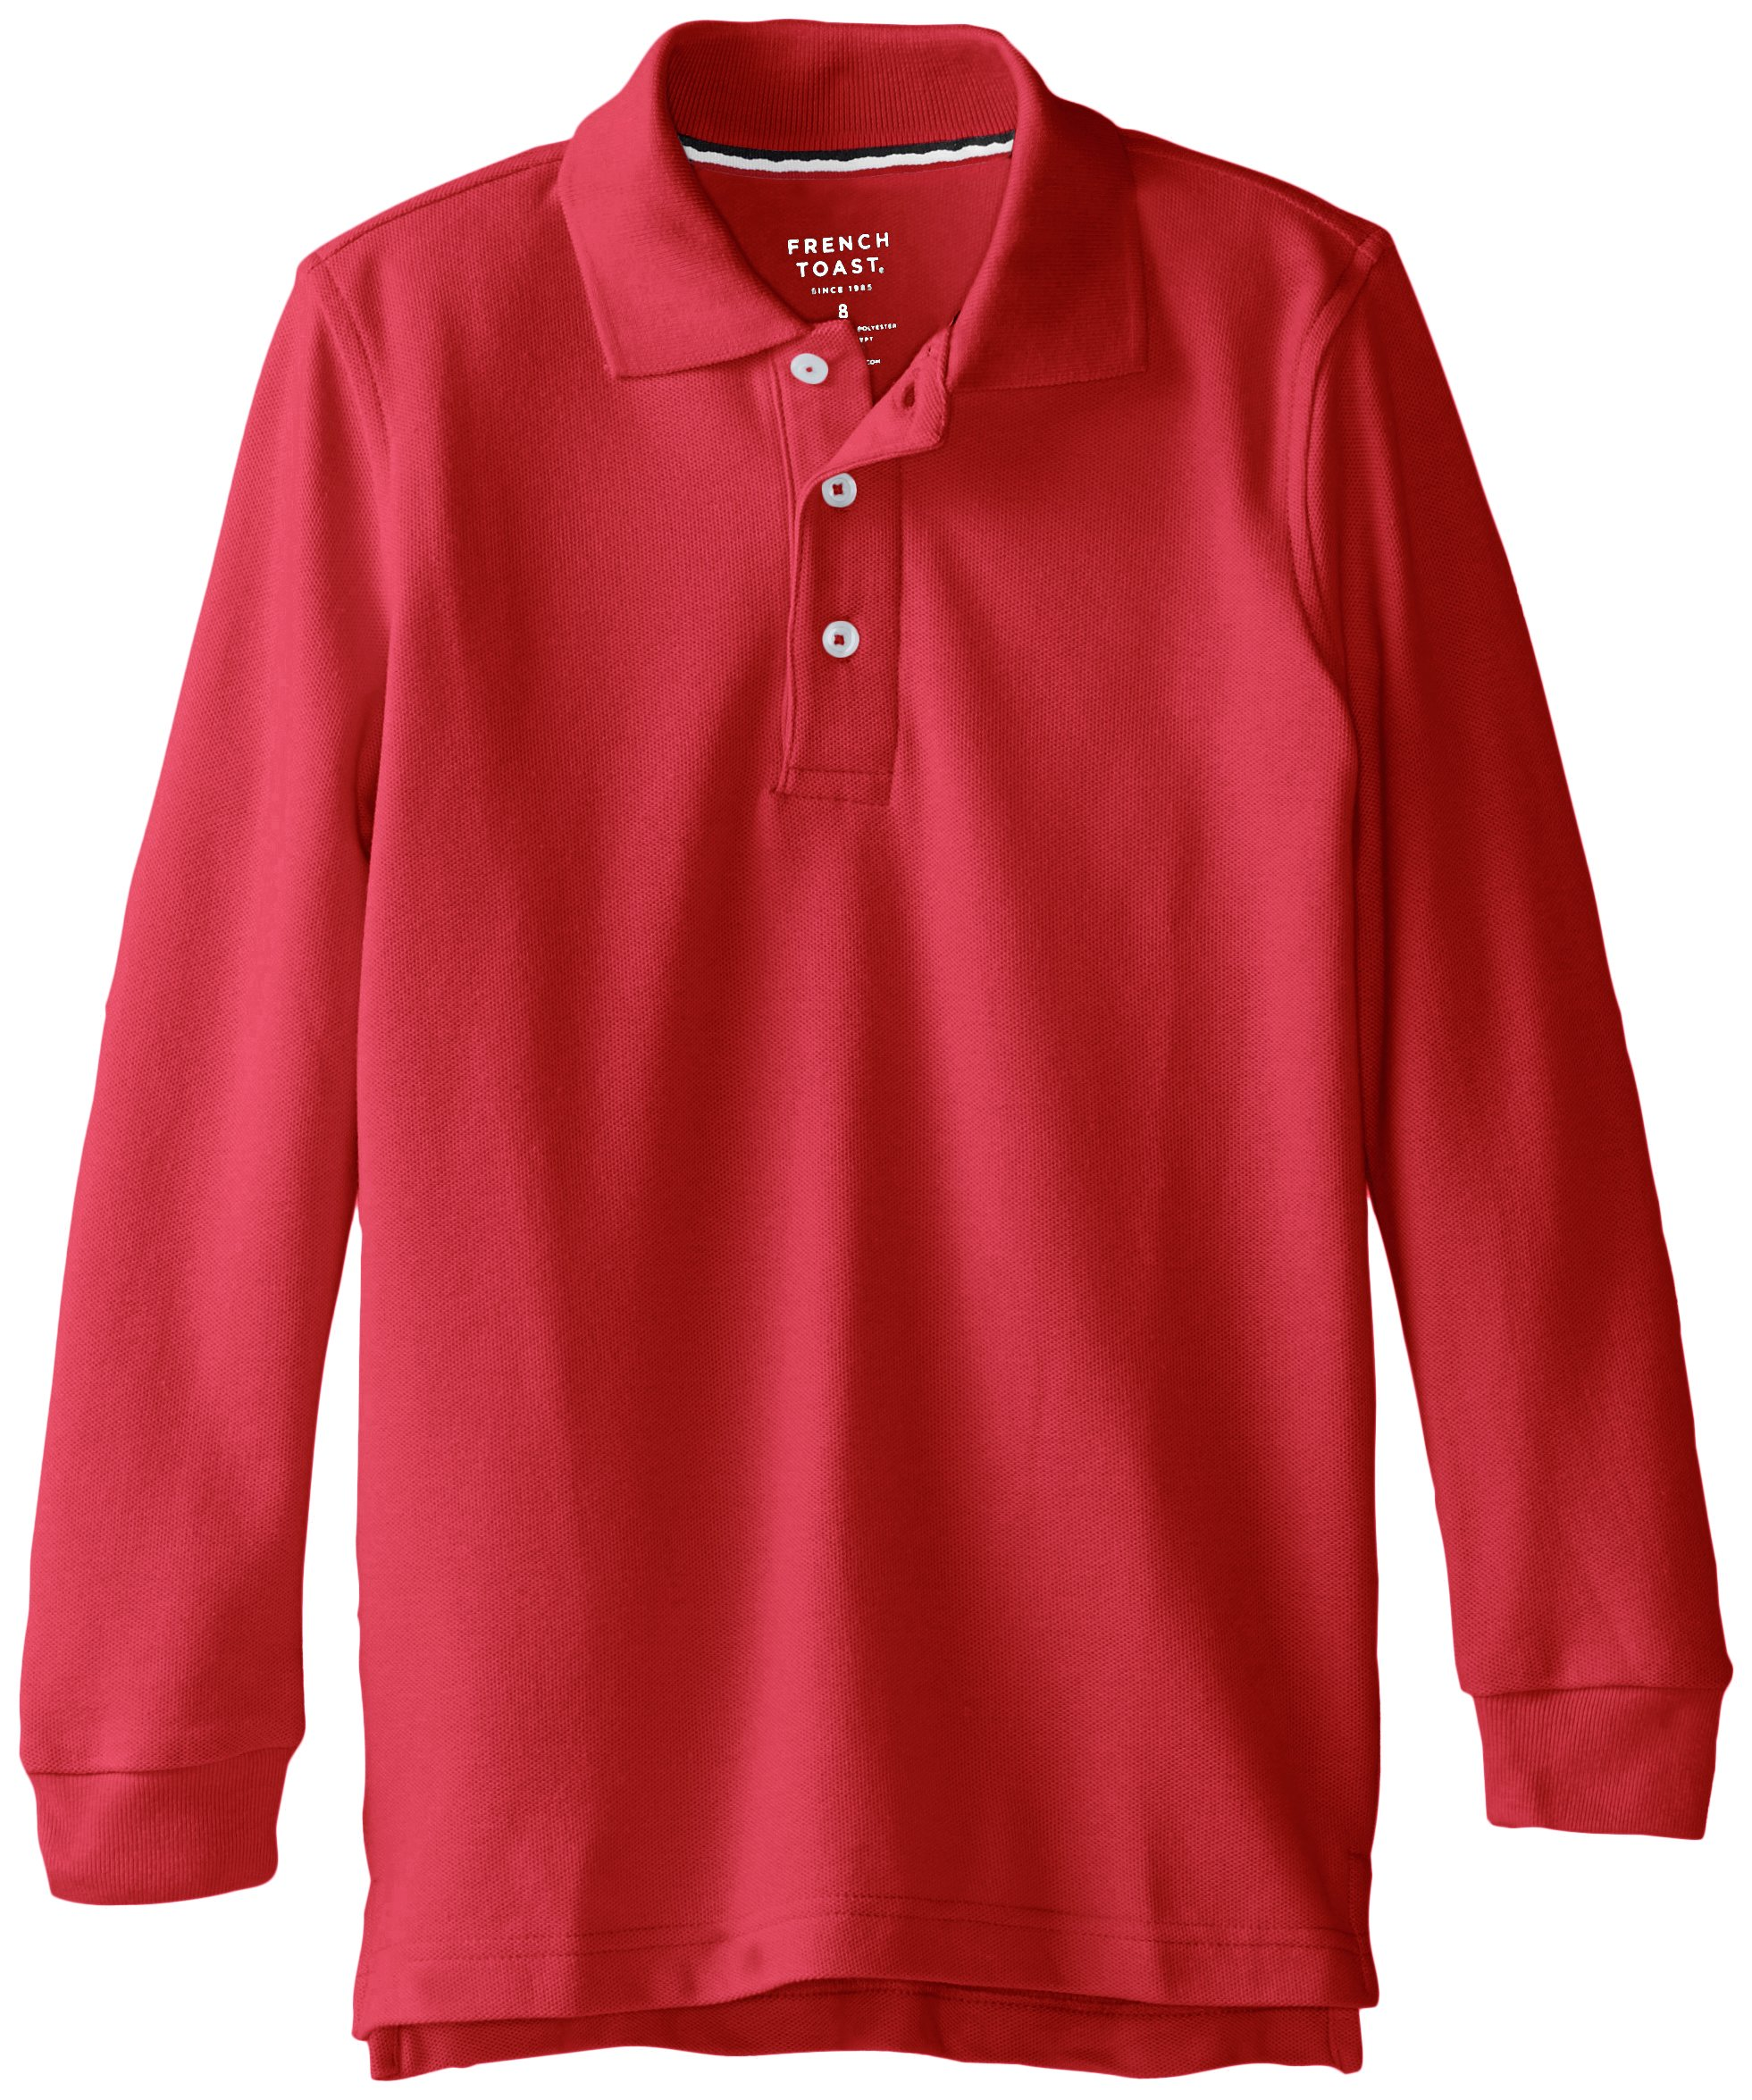 French Toast Big Boys' Long Sleeve Pique Polo, Red, 8